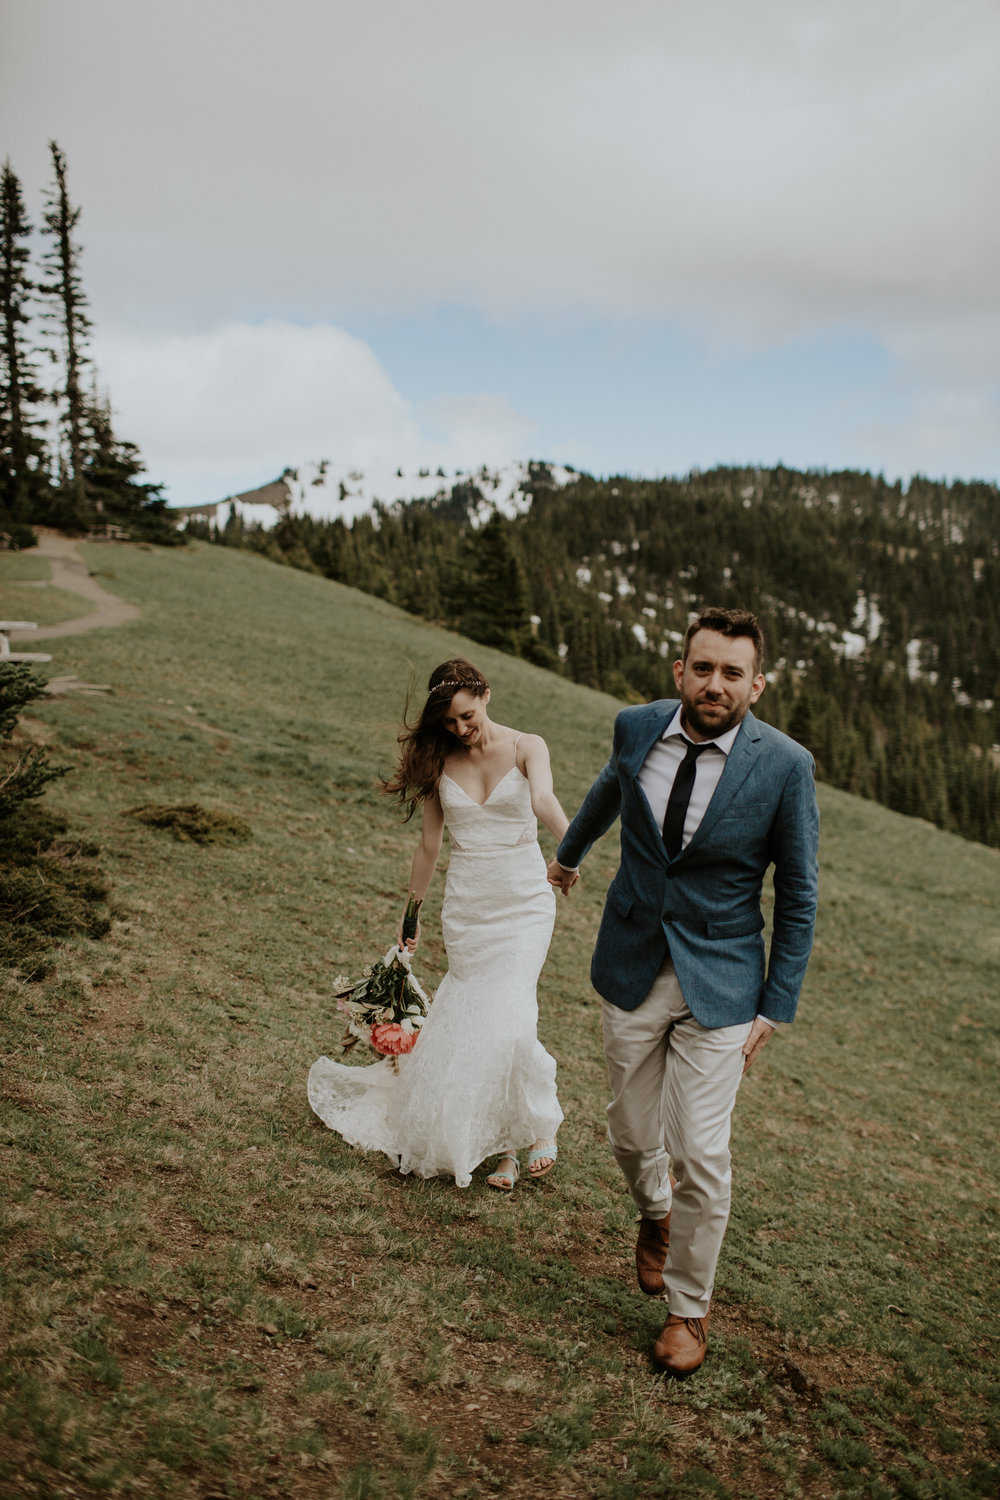 PNW-elopement-wedding-engagement-olympic national park-port angeles-hurricane ridge-lake crescent-kayla dawn photography- photographer-photography-kayladawnphoto-208.jpg